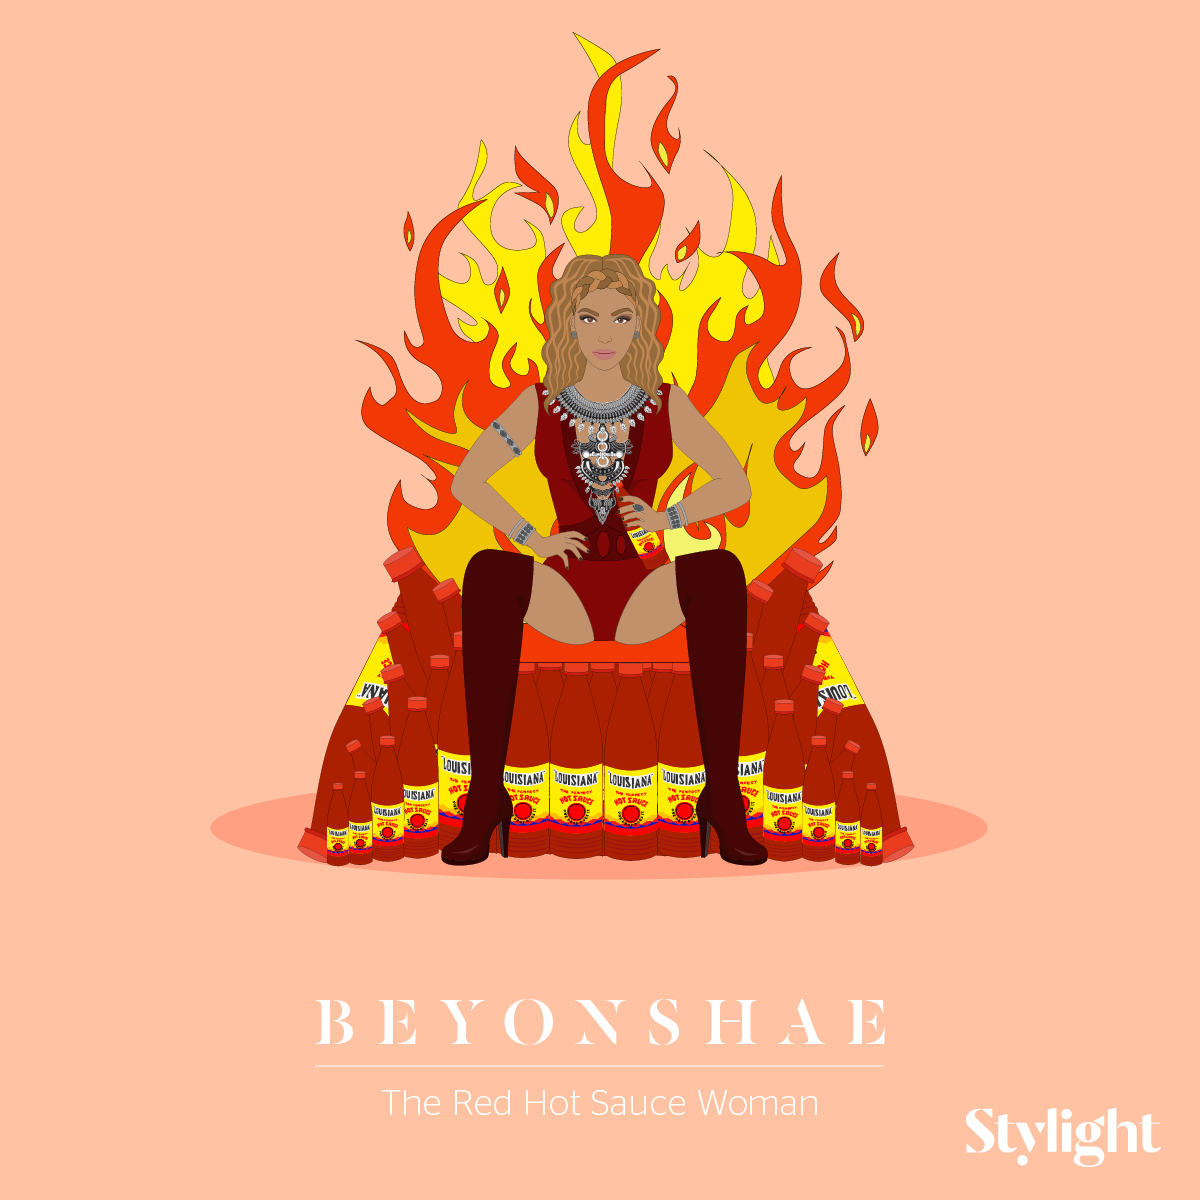 Game of Style - Beyonshae